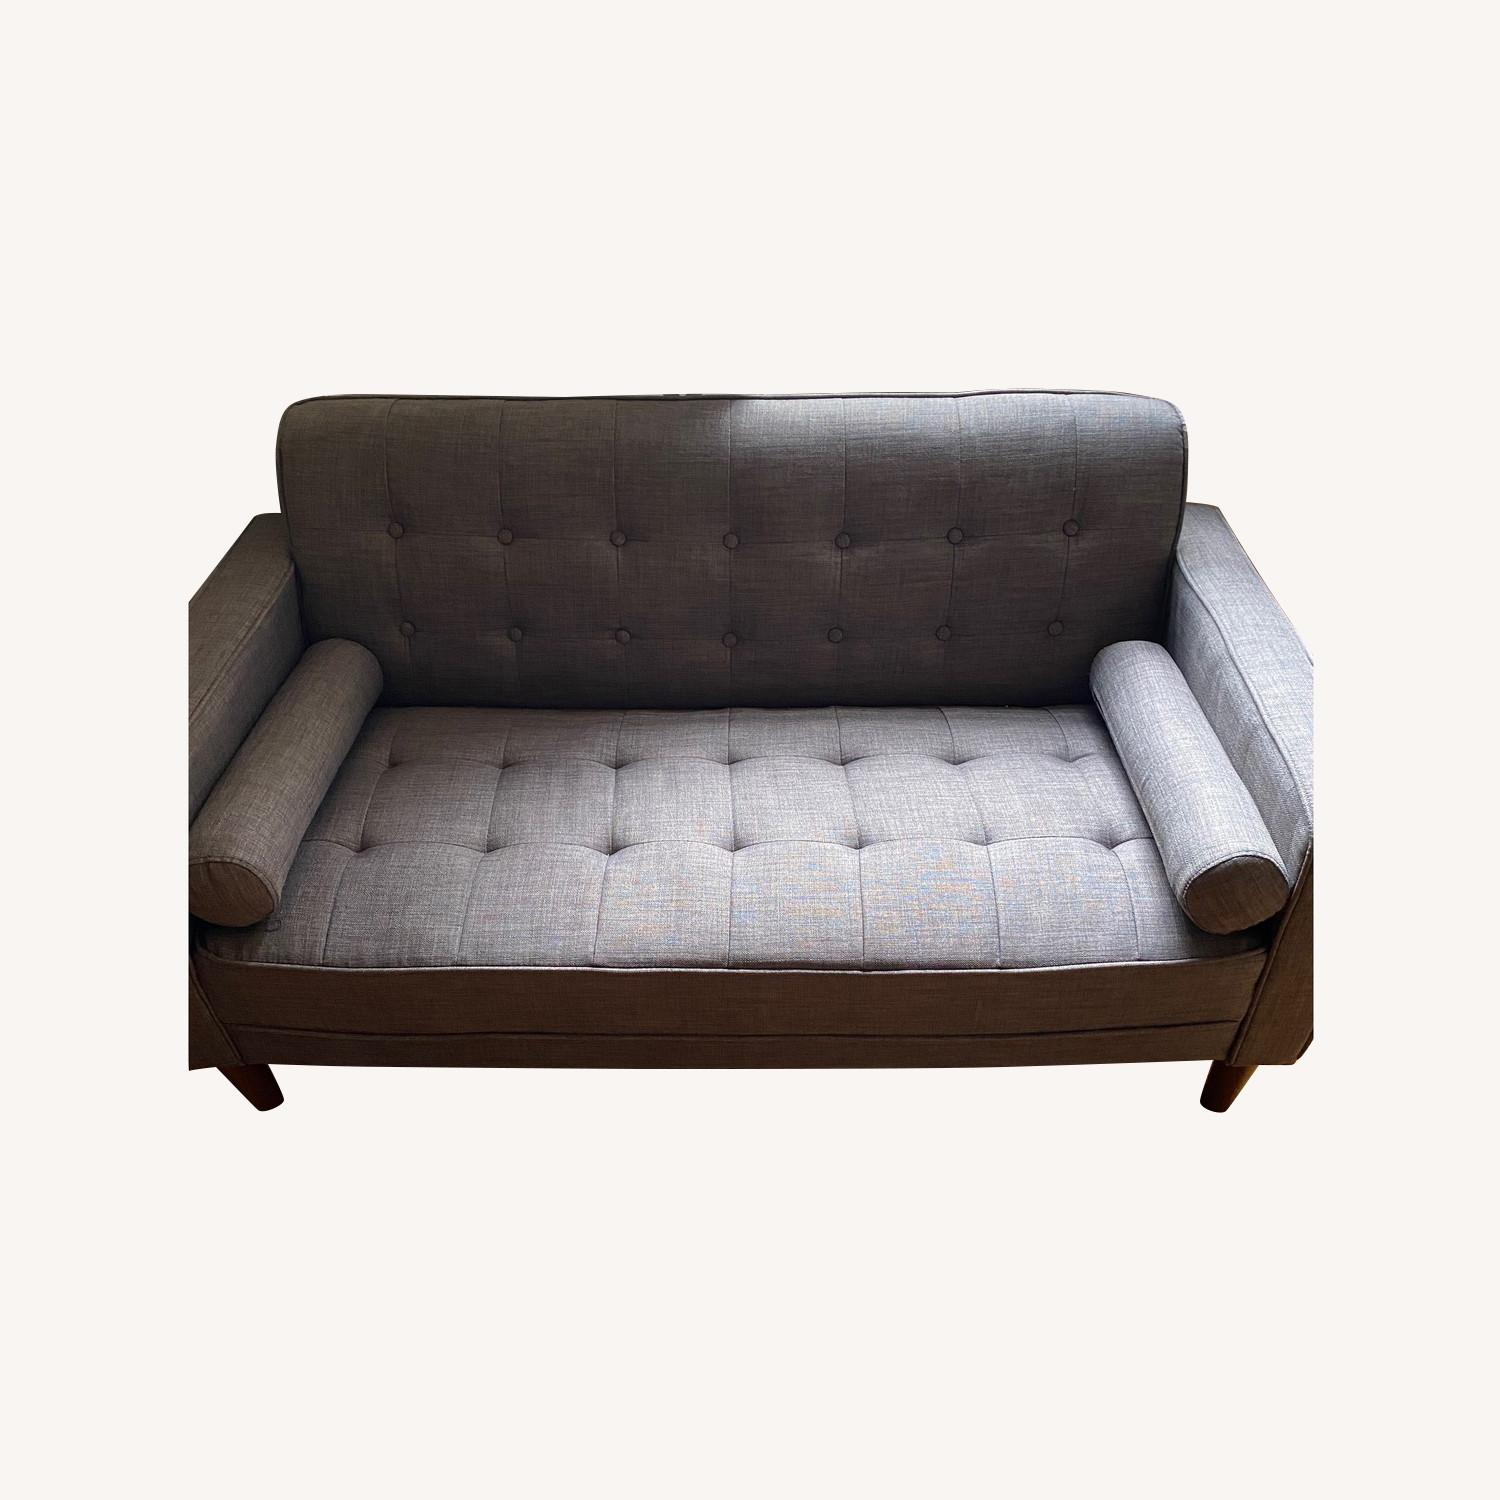 Nathaniel Home Small Space Sofa